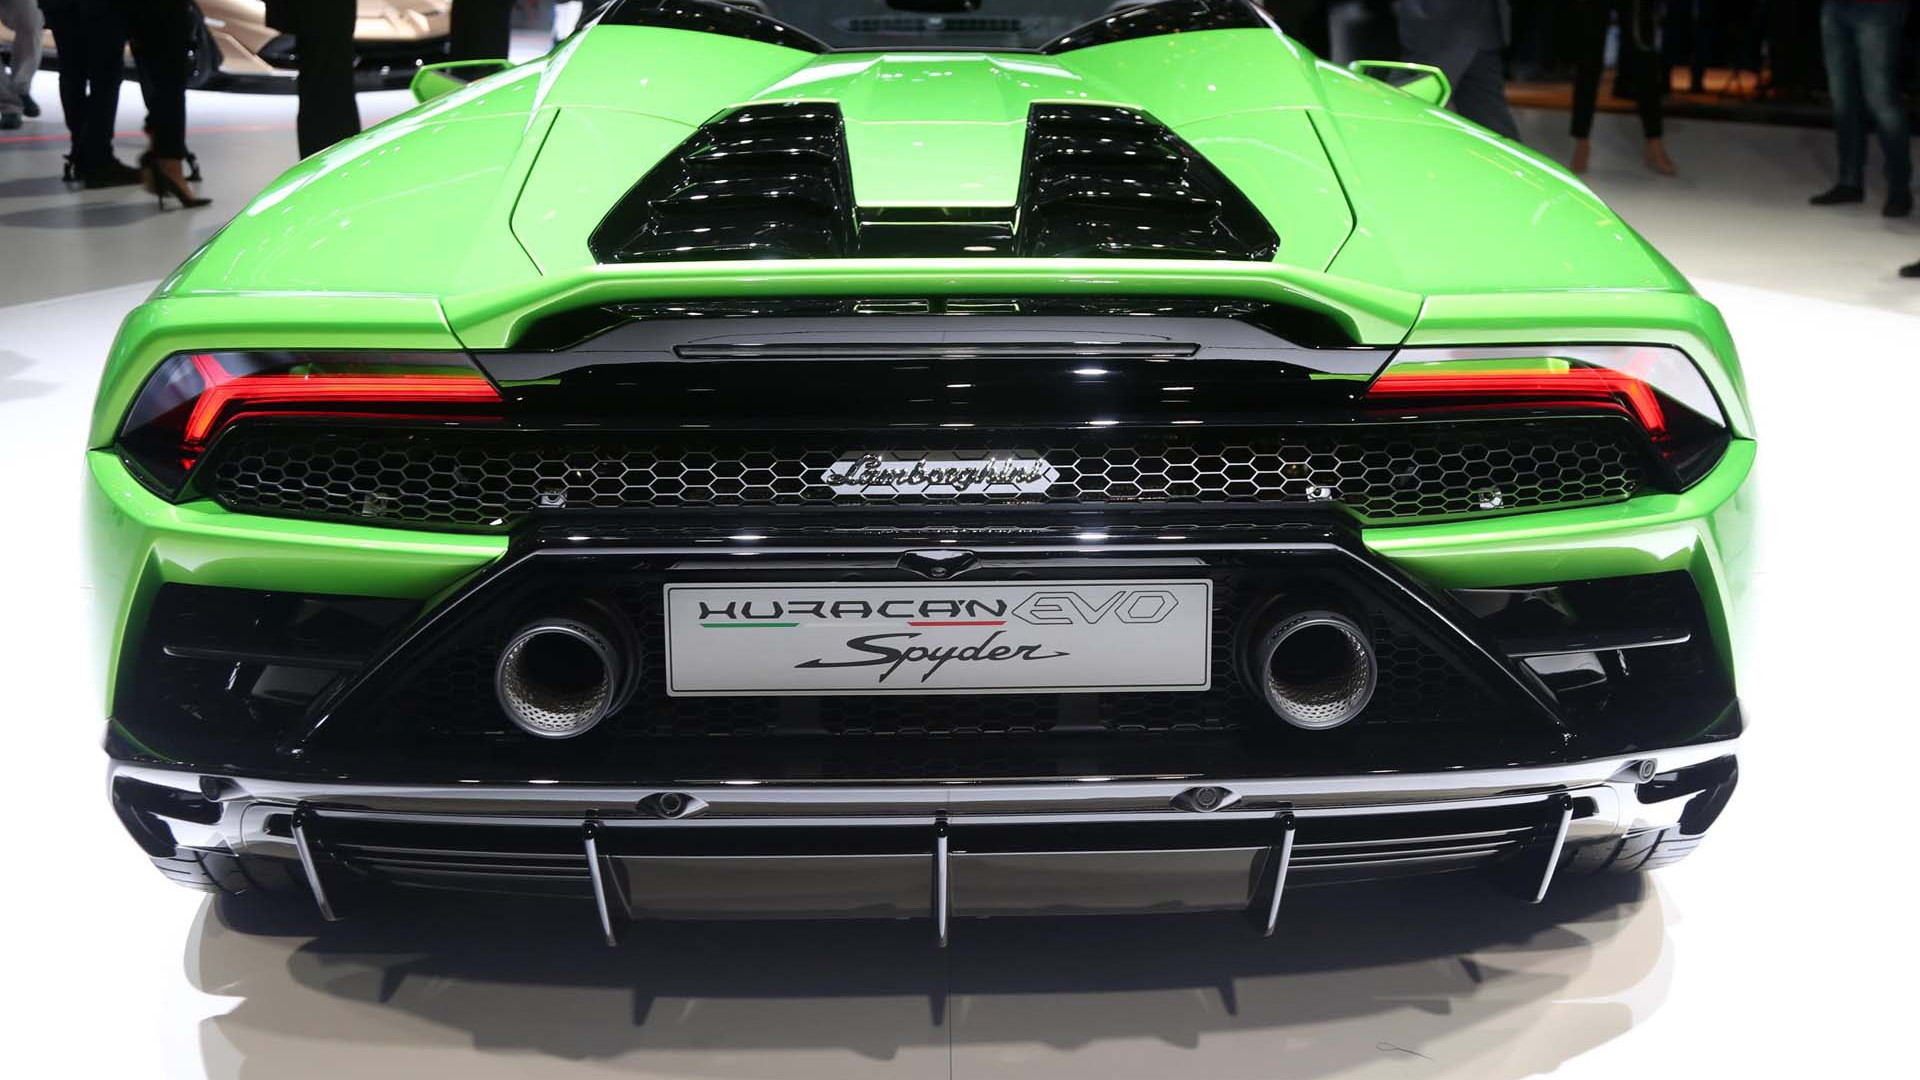 Lamborghini Huracan Evo Spyder Lets The Fresh Air In